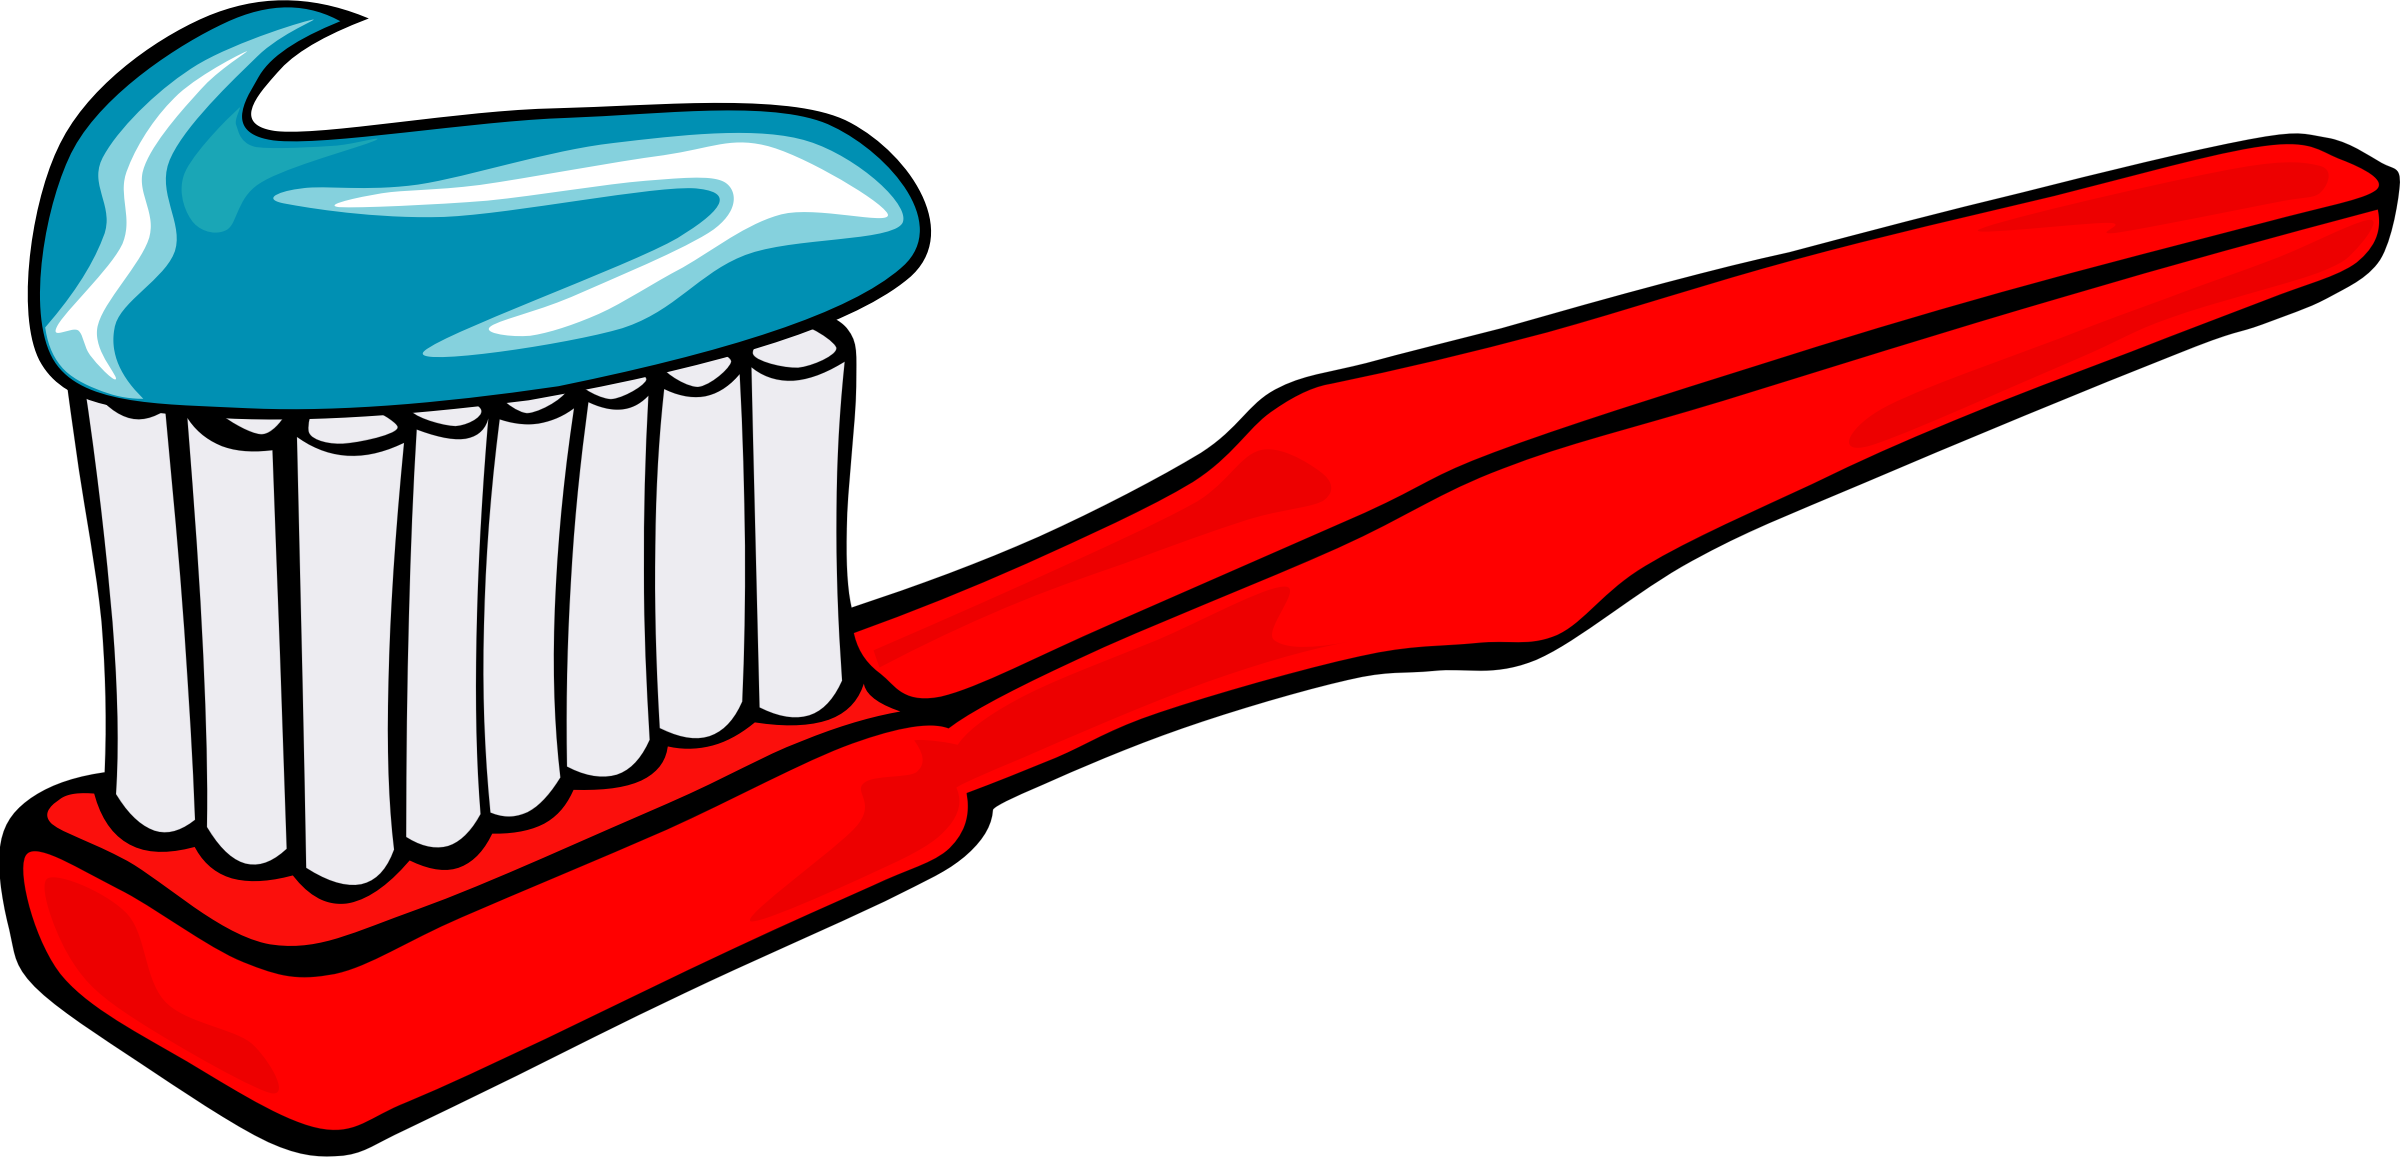 Clipart - Toothbrush and toothpaste